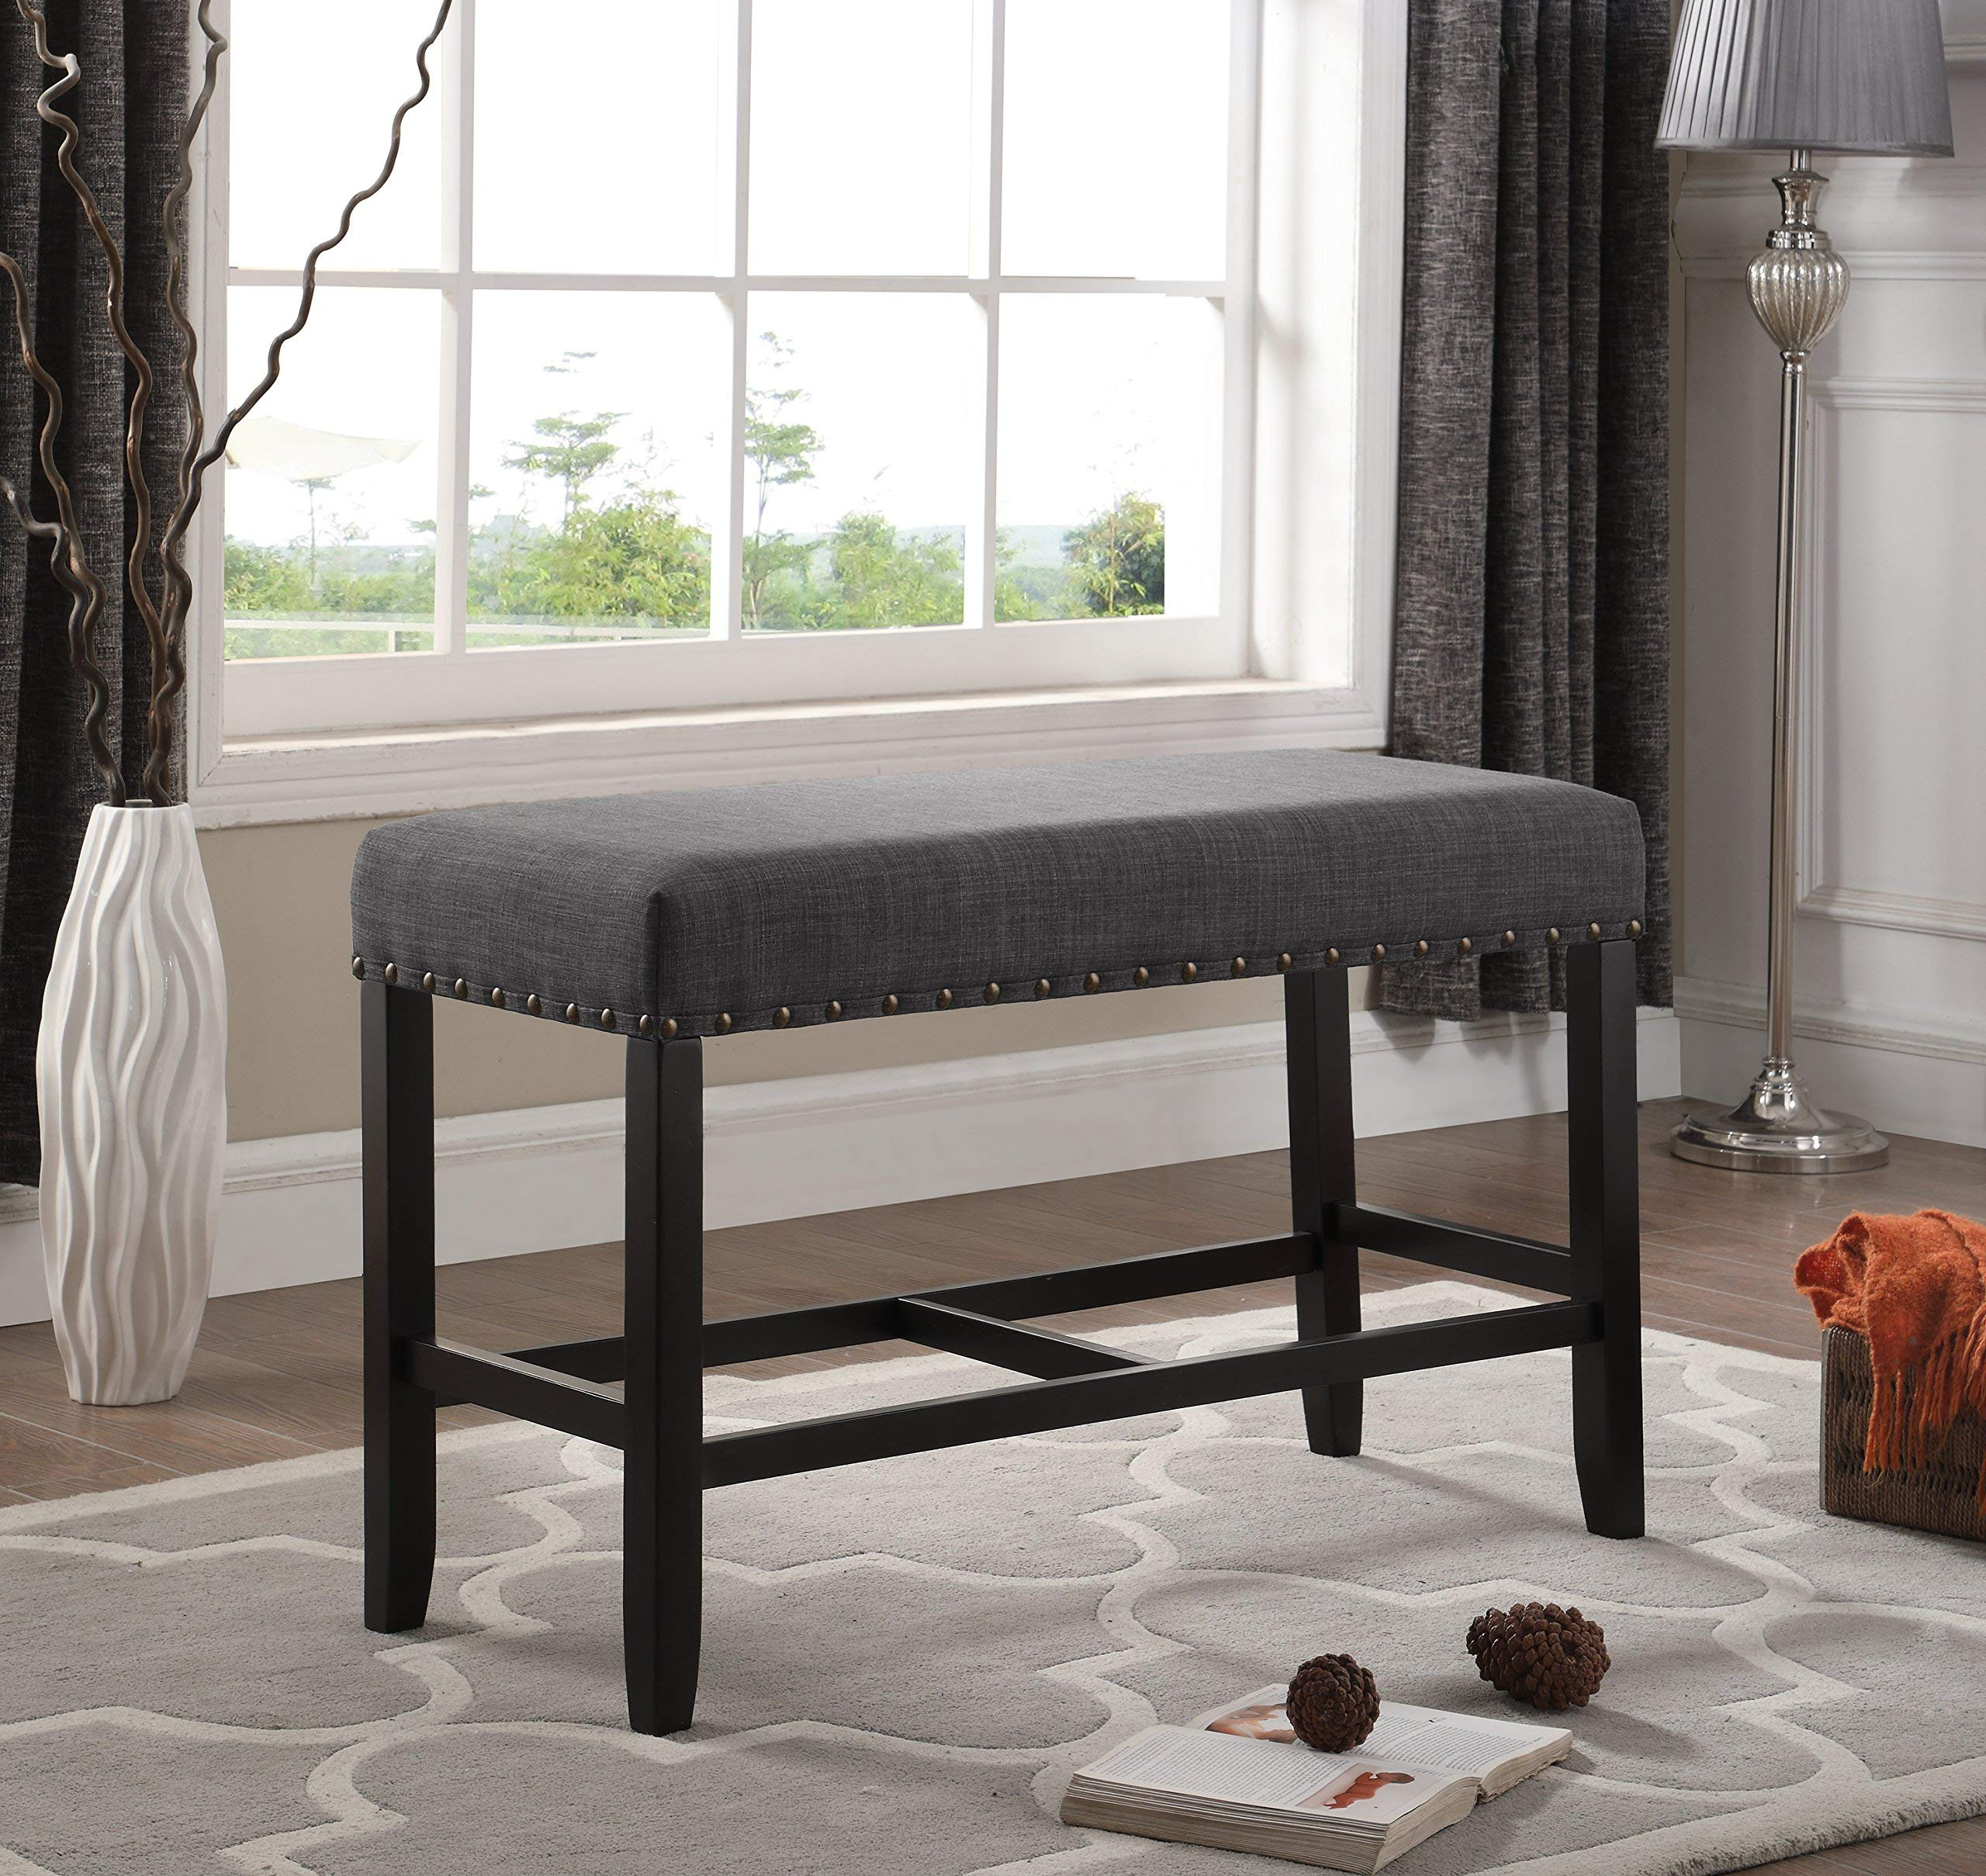 Roundhill Furniture Biony Fabric Counter Height Dining Bench with Nailhead Trim, Grey by Roundhill Furniture